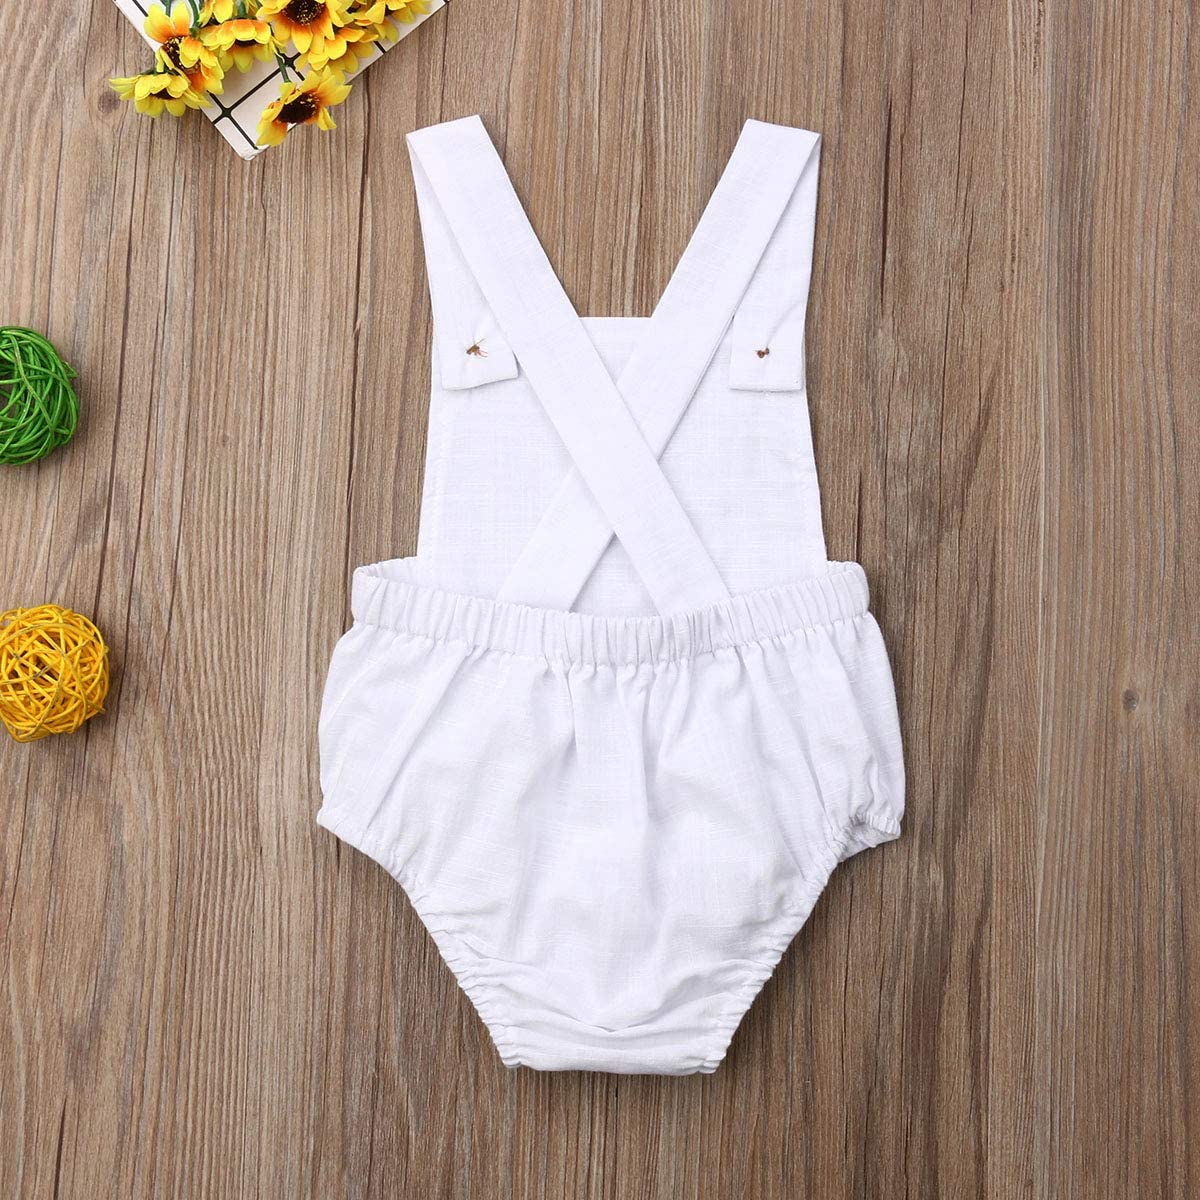 doublebabyjoy Newborn Baby 1 Piece Summer Romper Baby Girl Boy Solid Color Jumpsuit Sleeveless Backless Overalls Outfits